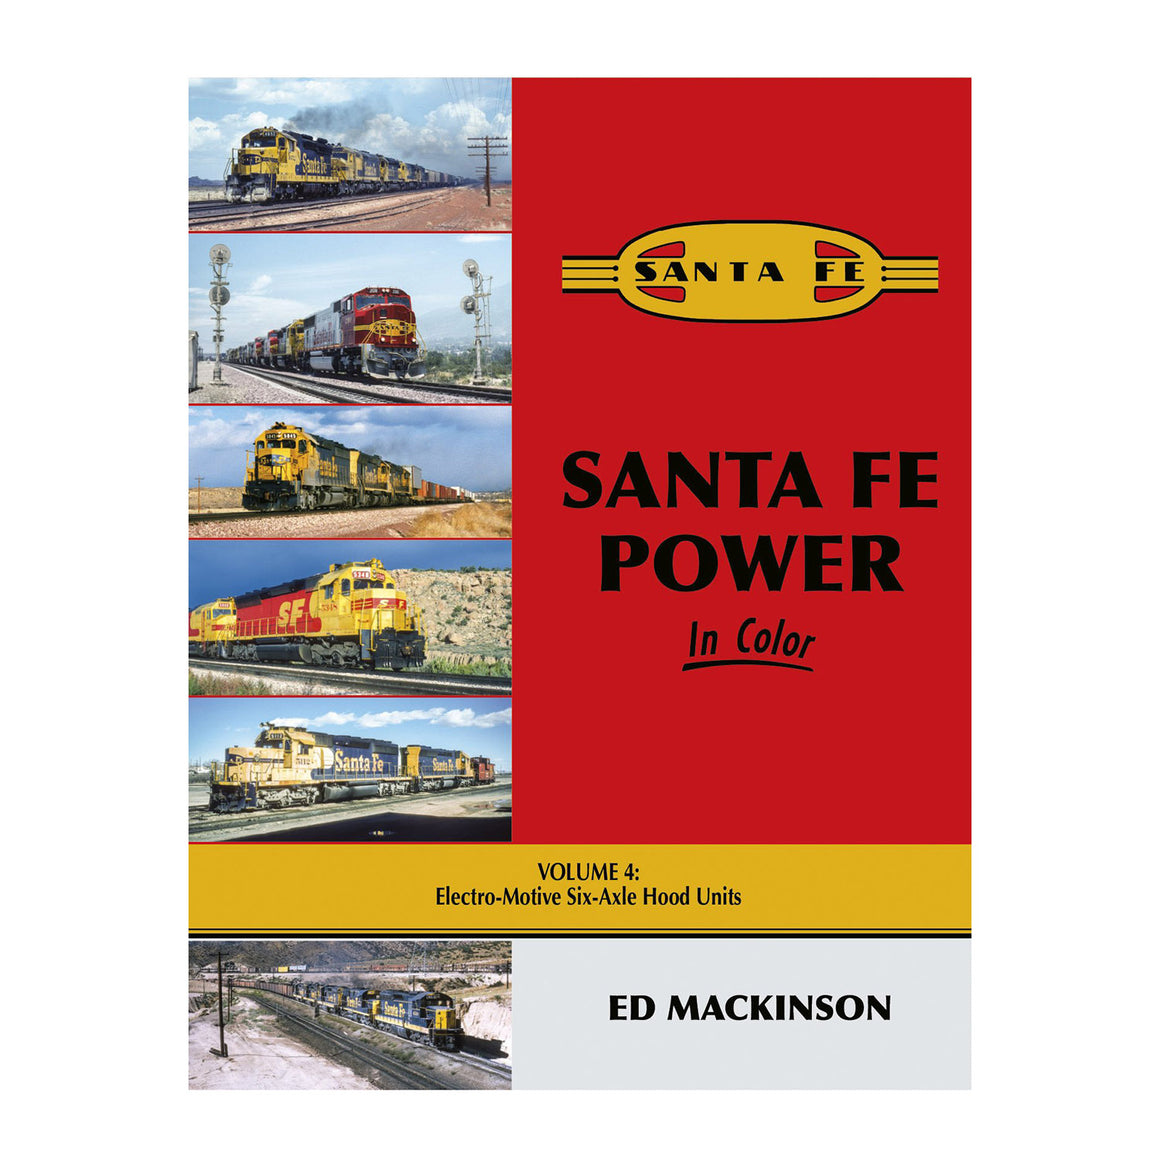 Books: Santa Fe Power In Color Volume 4 - Electro-Motive Six-Axle Hood Units